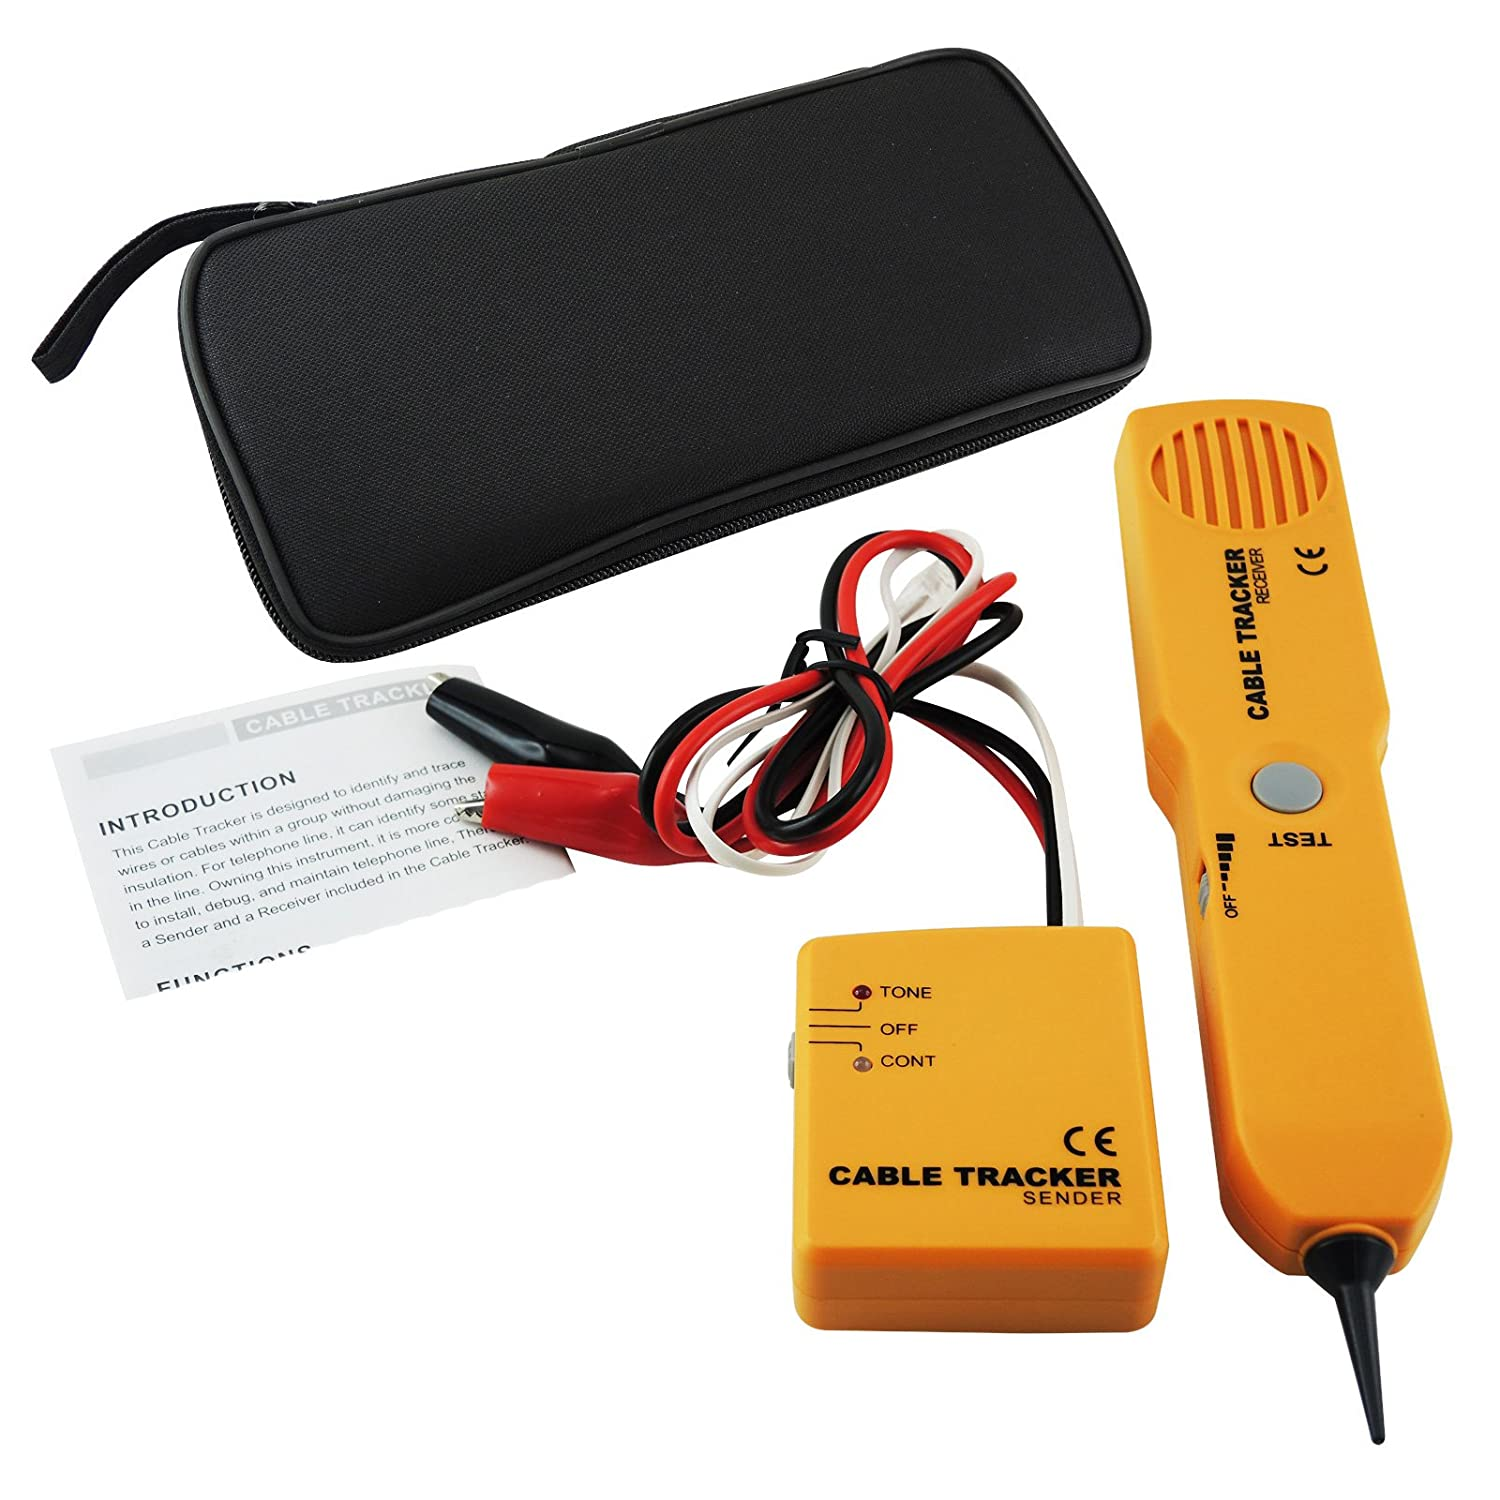 Amazon.com: Network Phone Telephone Line Cable Tracker Wire Tracer ...